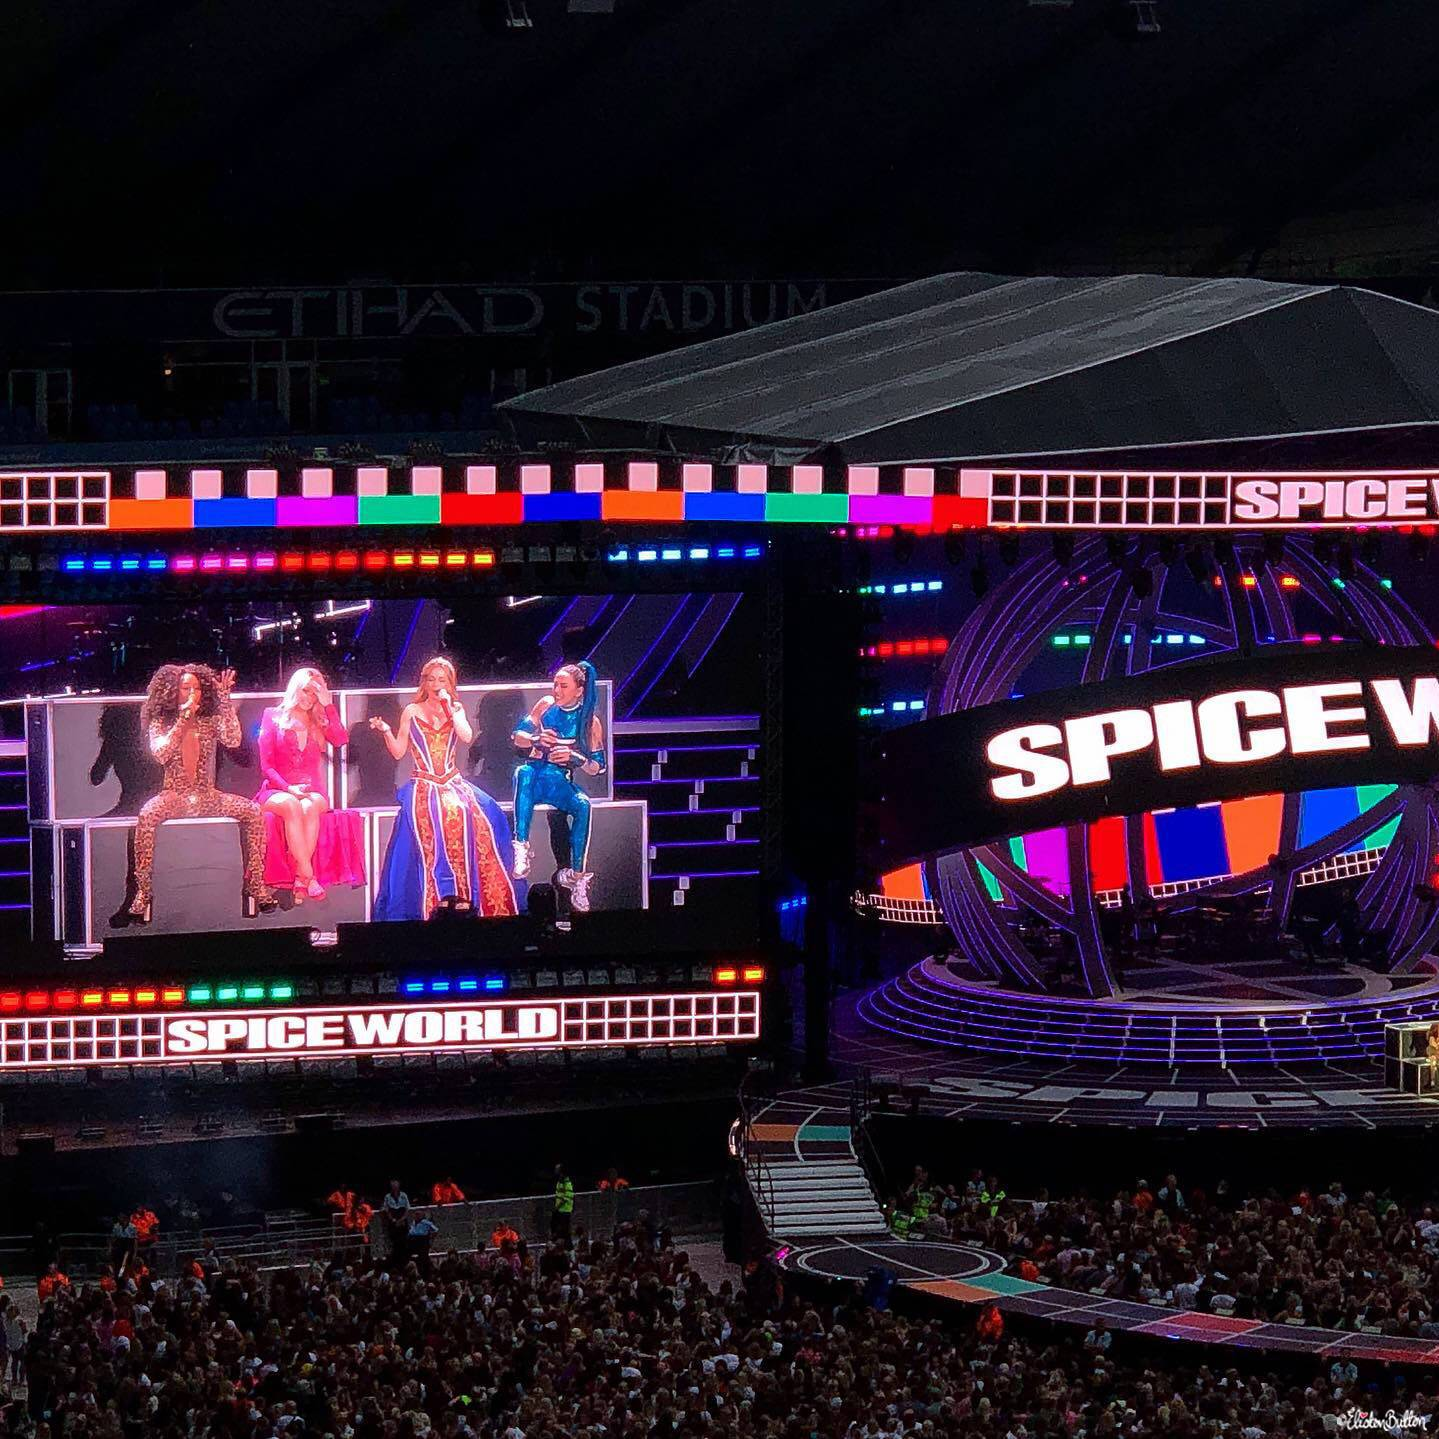 Spice Girls - Manchester Etihad Stadium 2019 - Moments of Magic at www.elistonbutton.com - Eliston Button - A Treasure Trove of Creativity, Colour and Adventure.